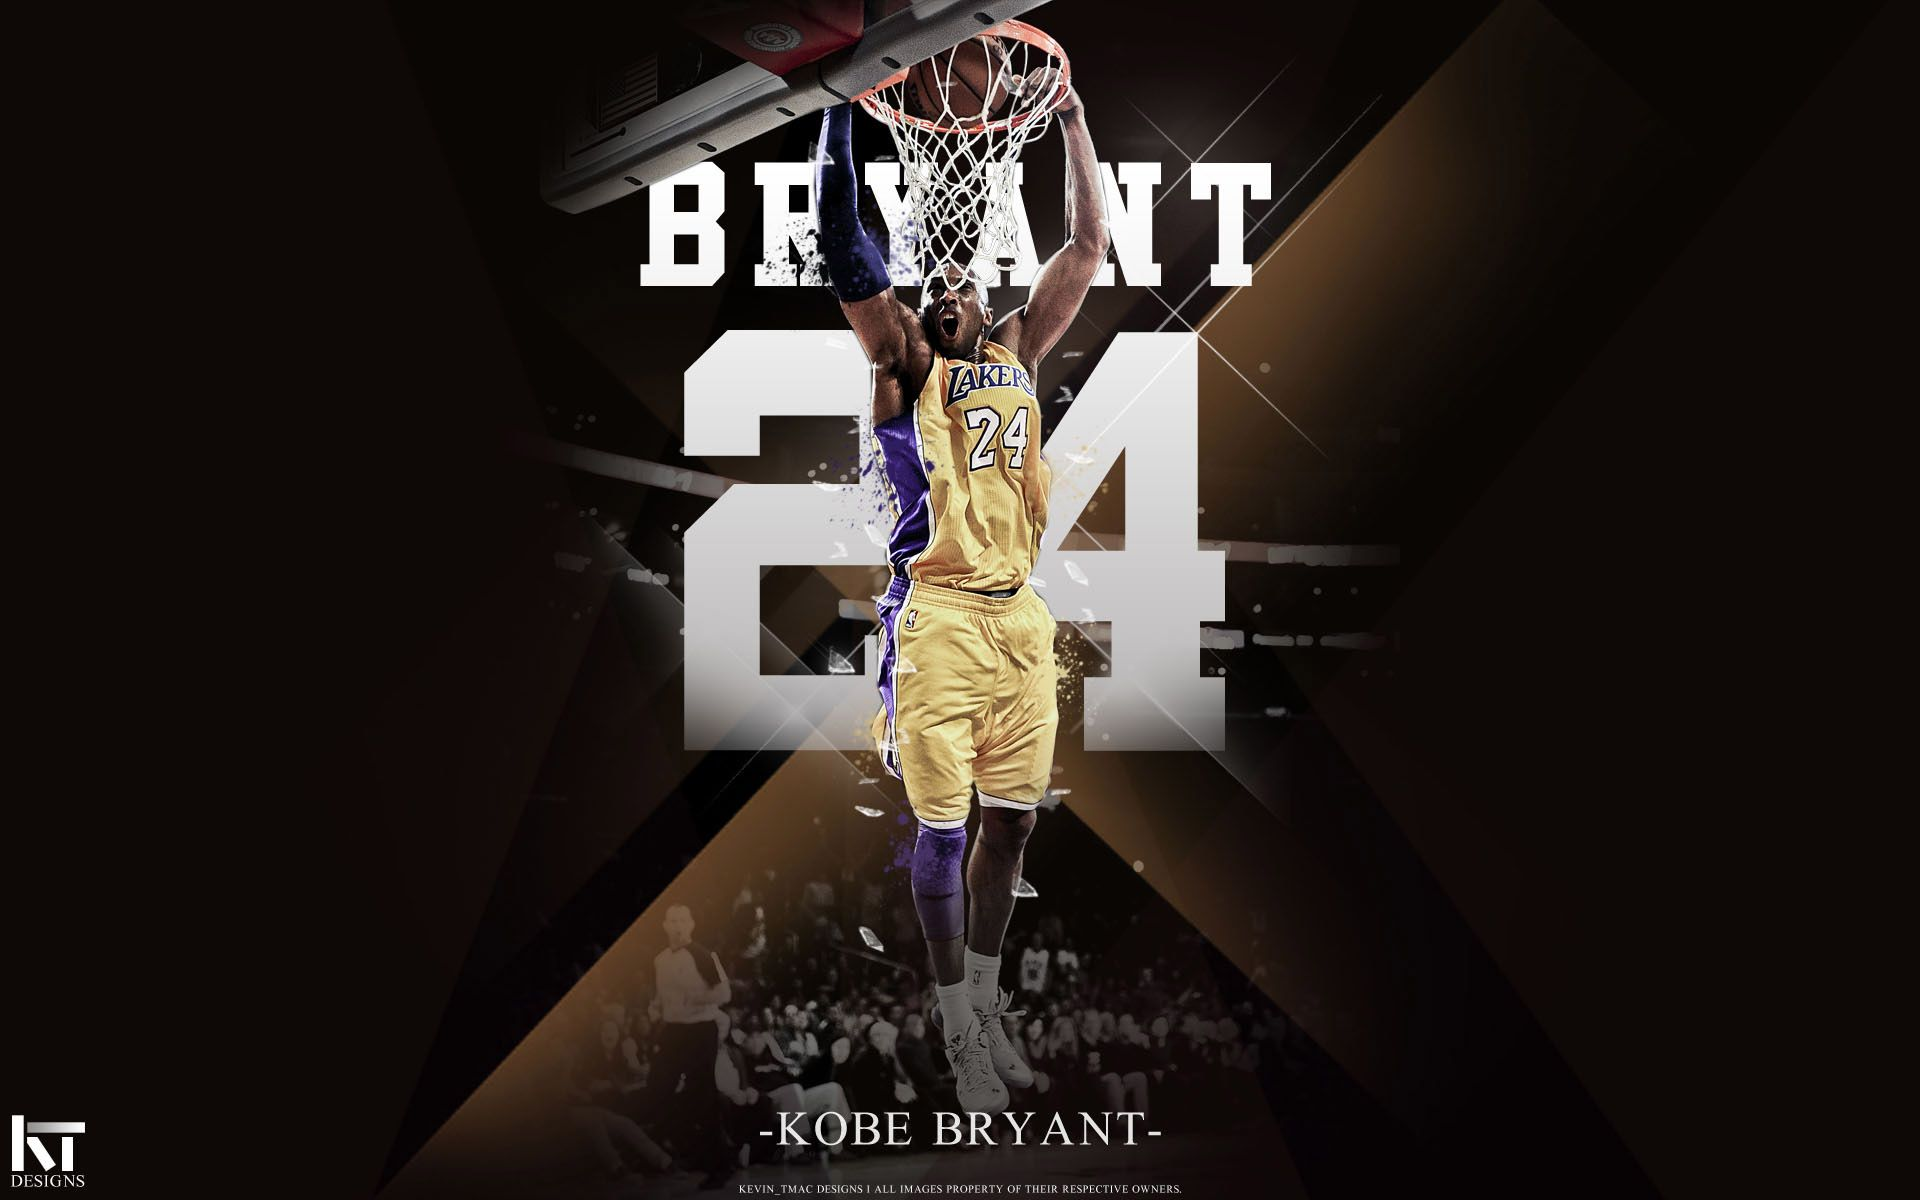 Free wallpaper kobe bryant retirement wallpaper nba wallpapers free wallpaper kobe bryant retirement wallpaper nba voltagebd Image collections